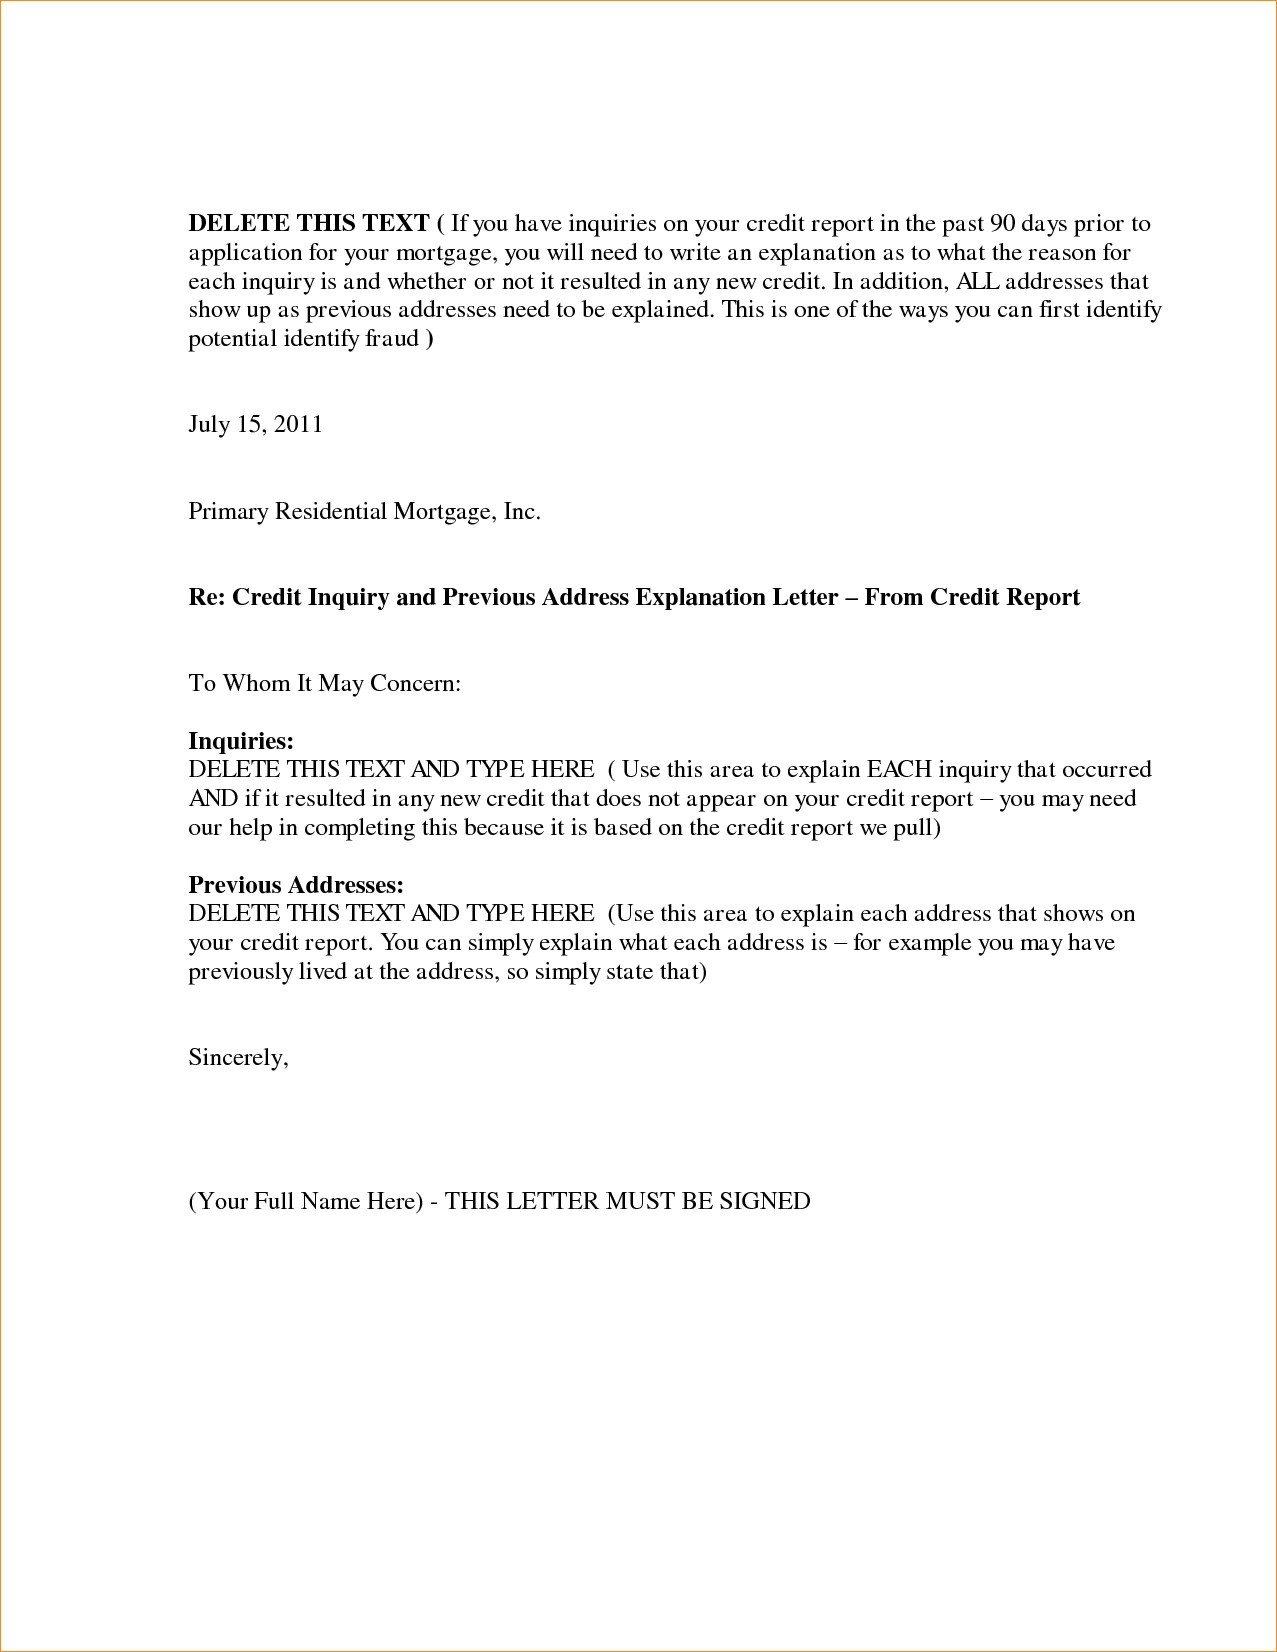 letter of explanation for credit inquiries template Collection-Letter Explanation for Credit Inquiries Template Letter Explanation format New Letter Explanation Sample Best 1-g